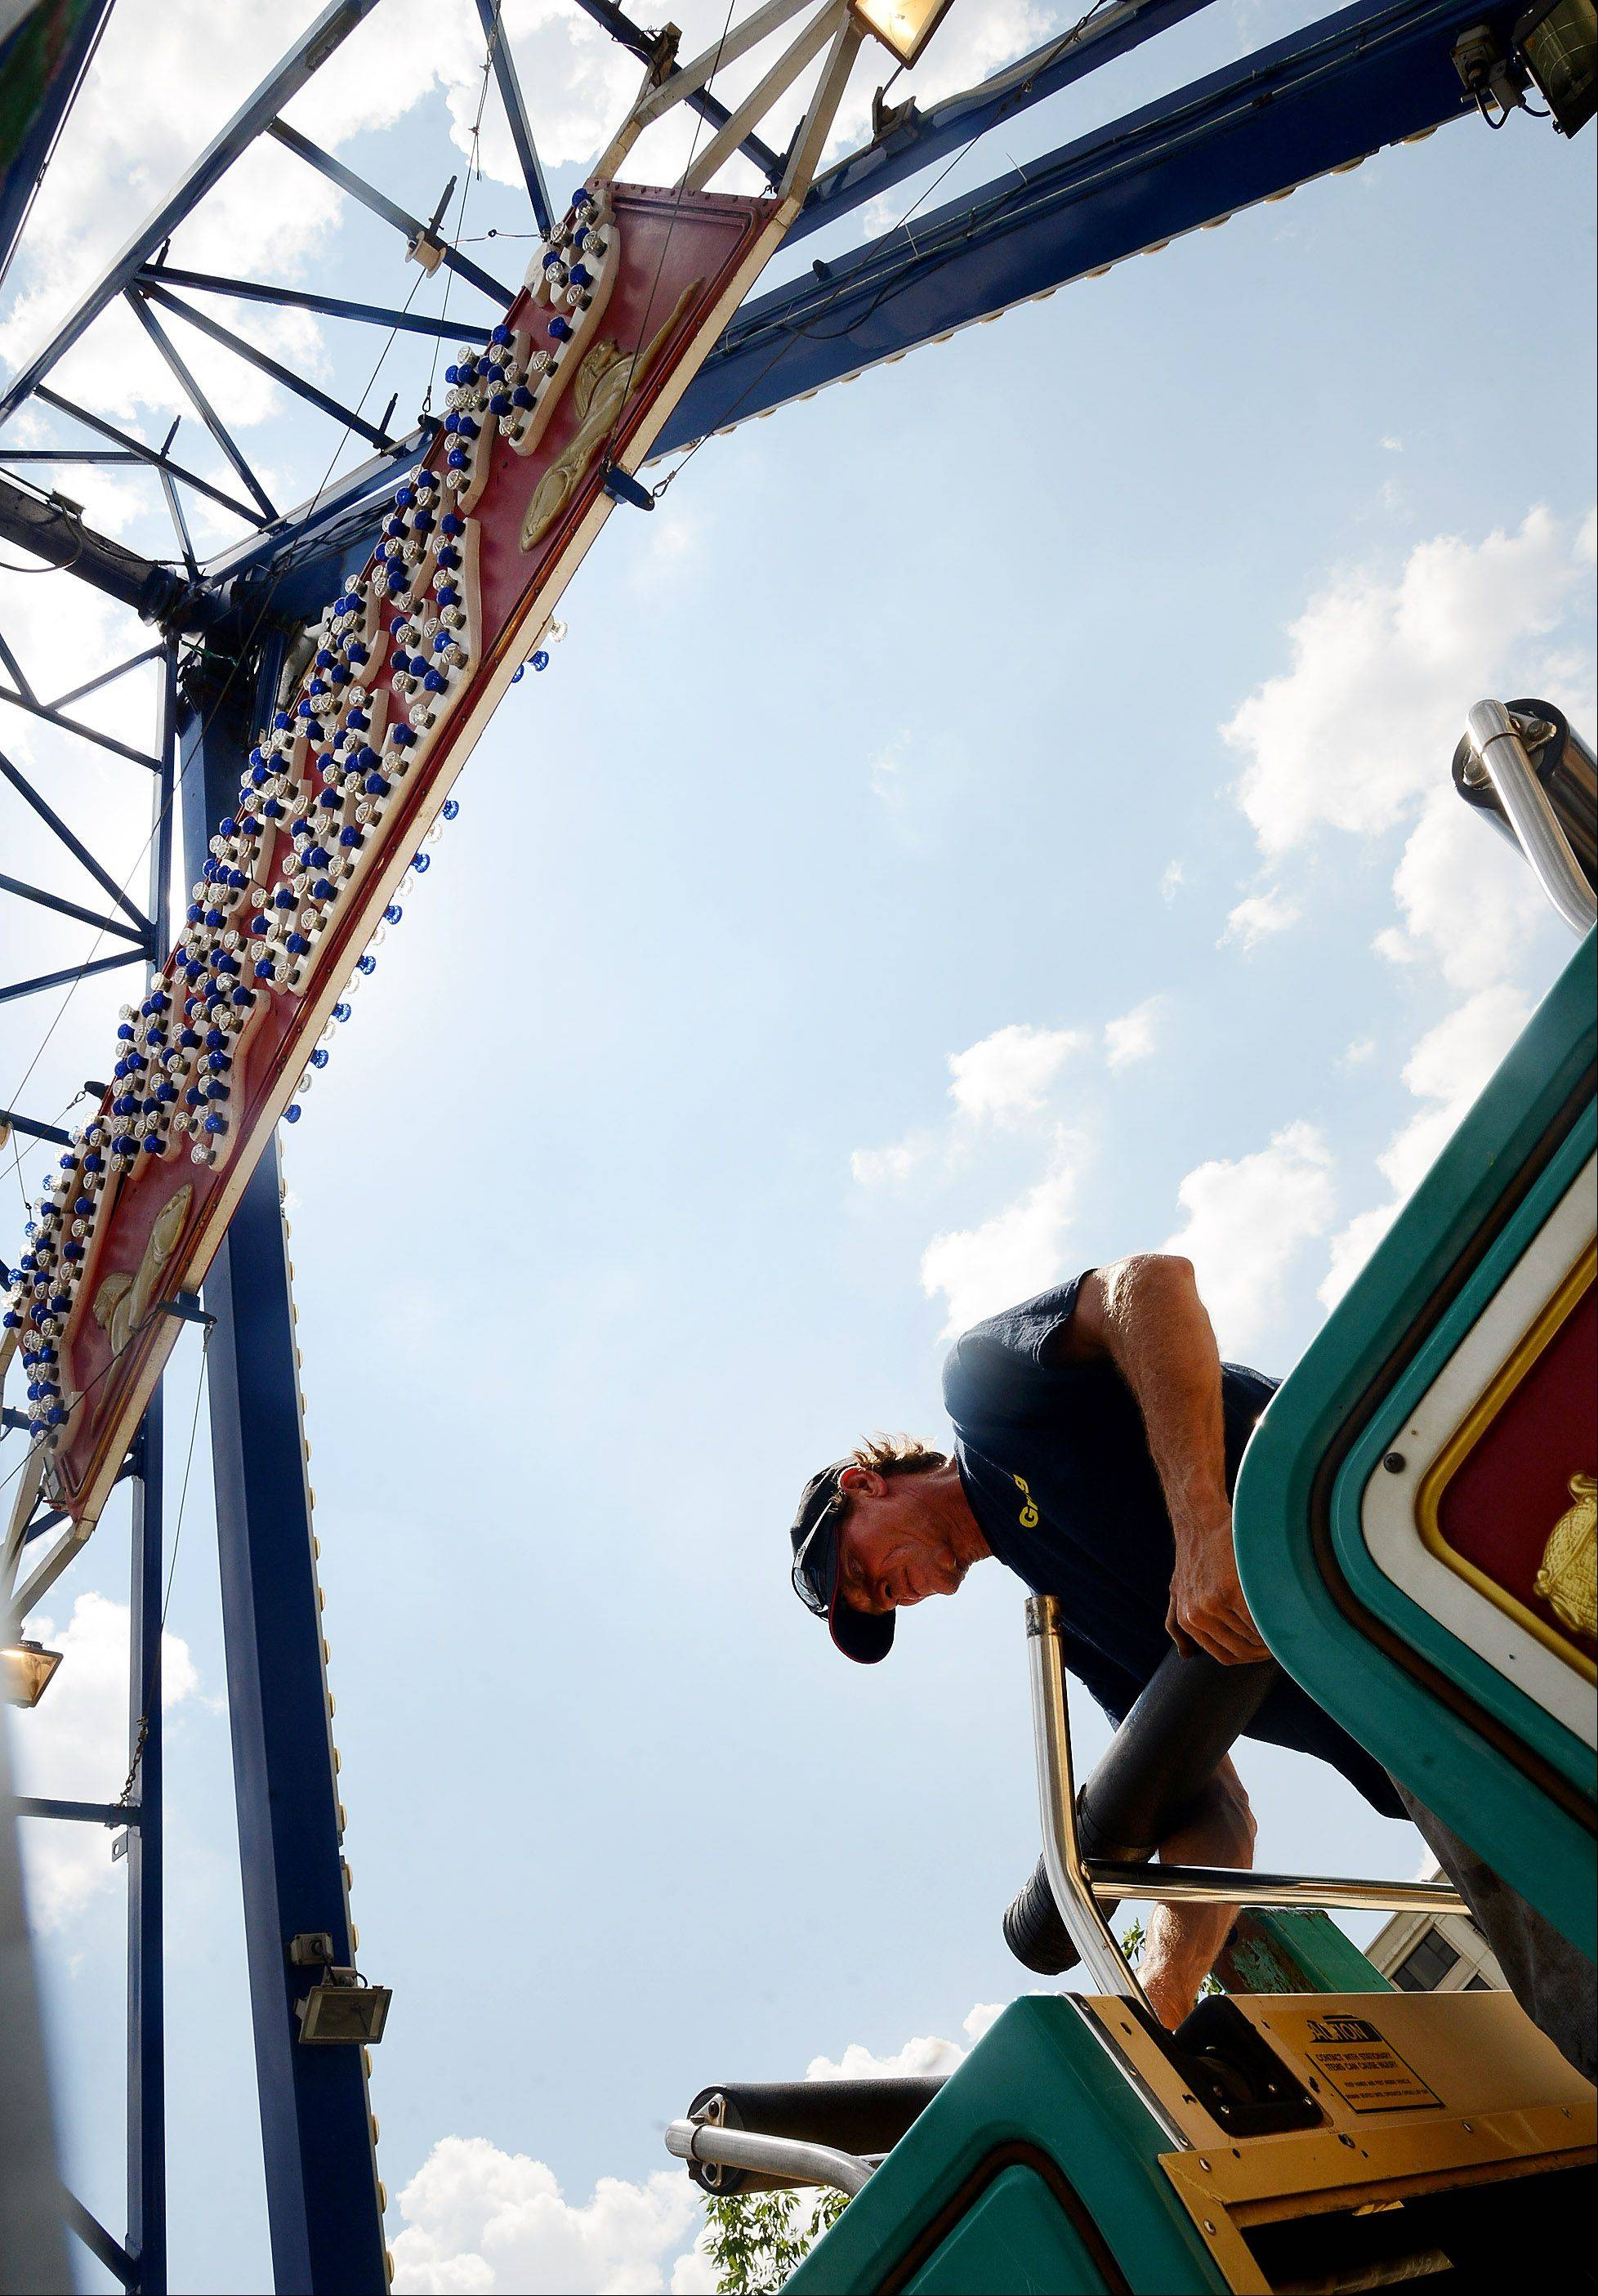 Maintenance man Greg Etheridge of D&J Amusements sets up the Pharaoh's Fury ride in preparation for Des Plaines Summer Fling in downtown Des Plaines. The three-day festival highlighted by live music, food, games and carnival rides kicks off Friday.